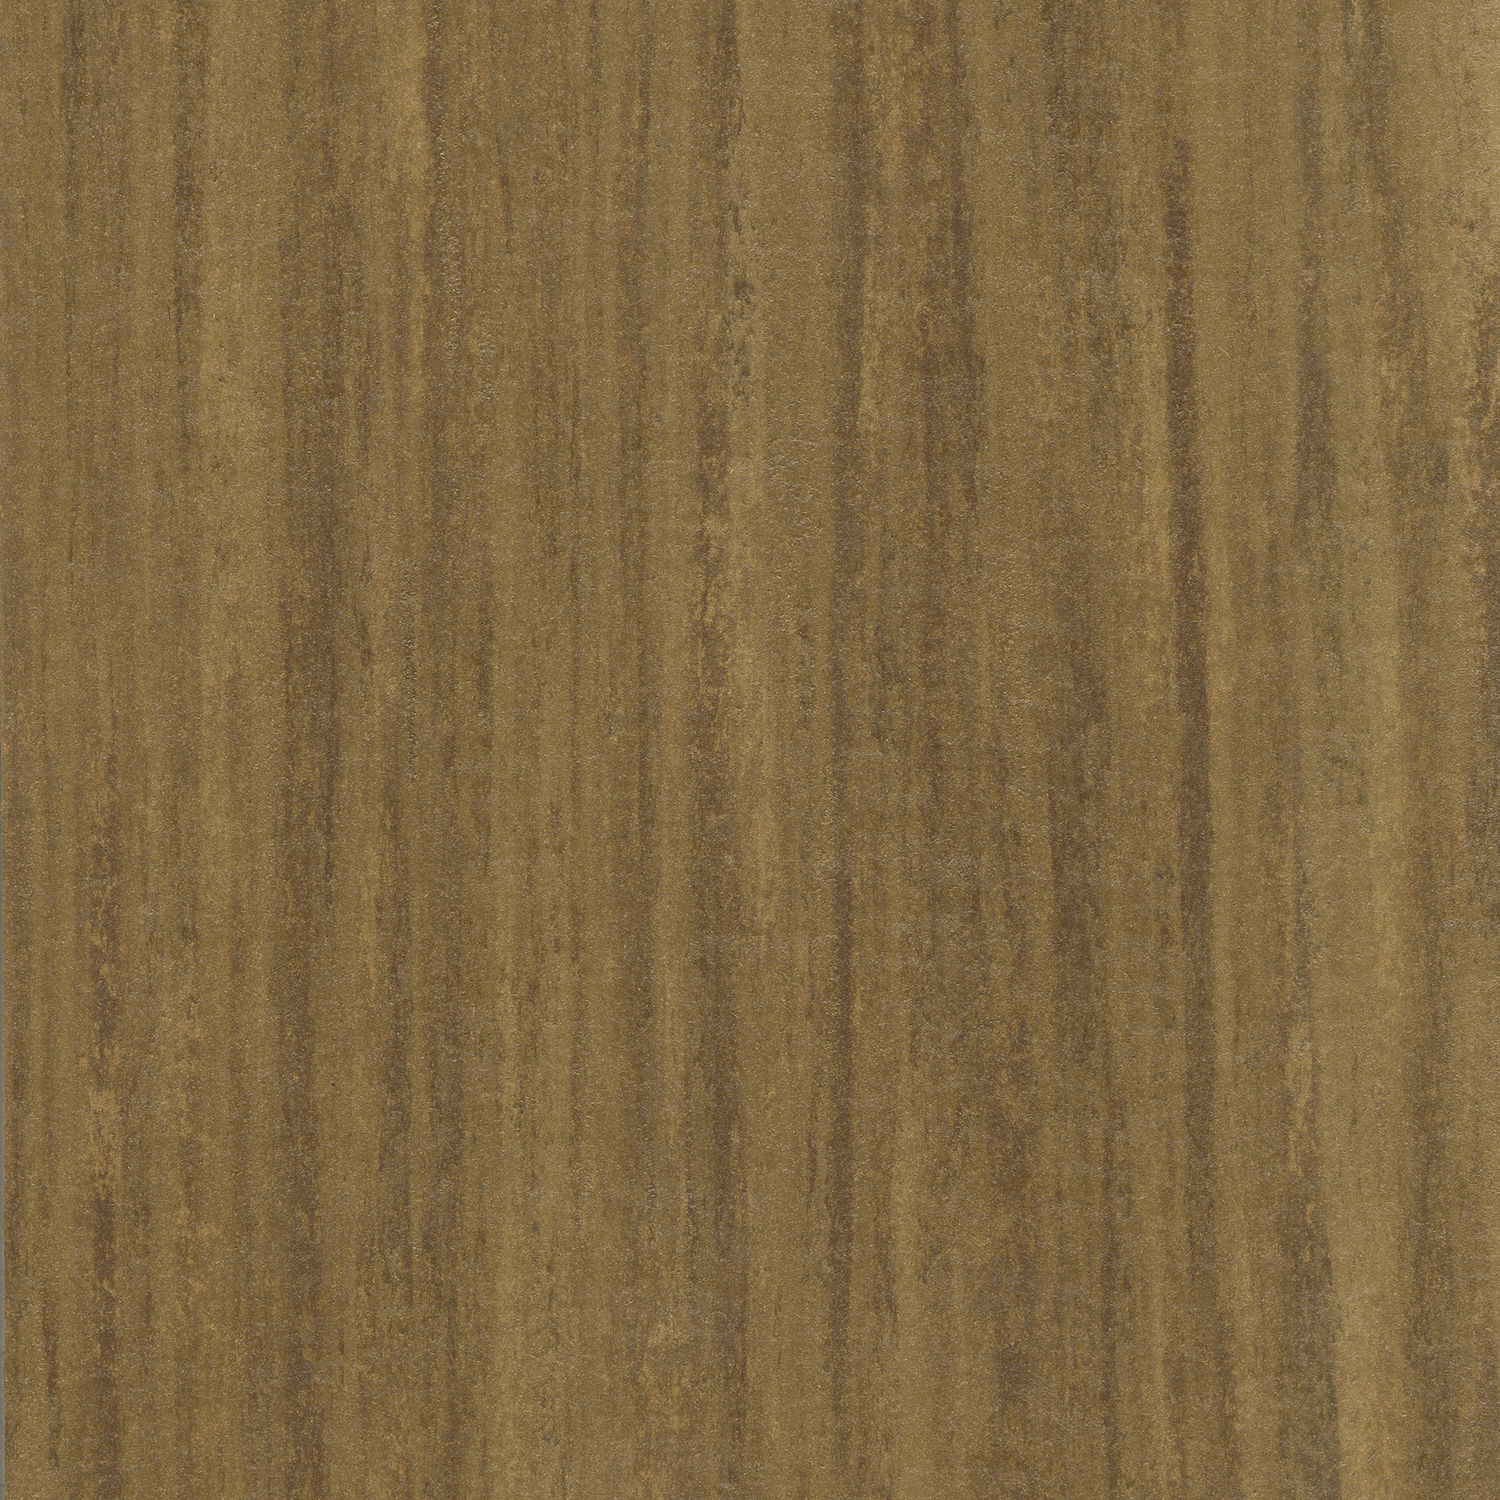 linoleum flooring commercial smooth wood look lino art nature lpx armstrong dlw